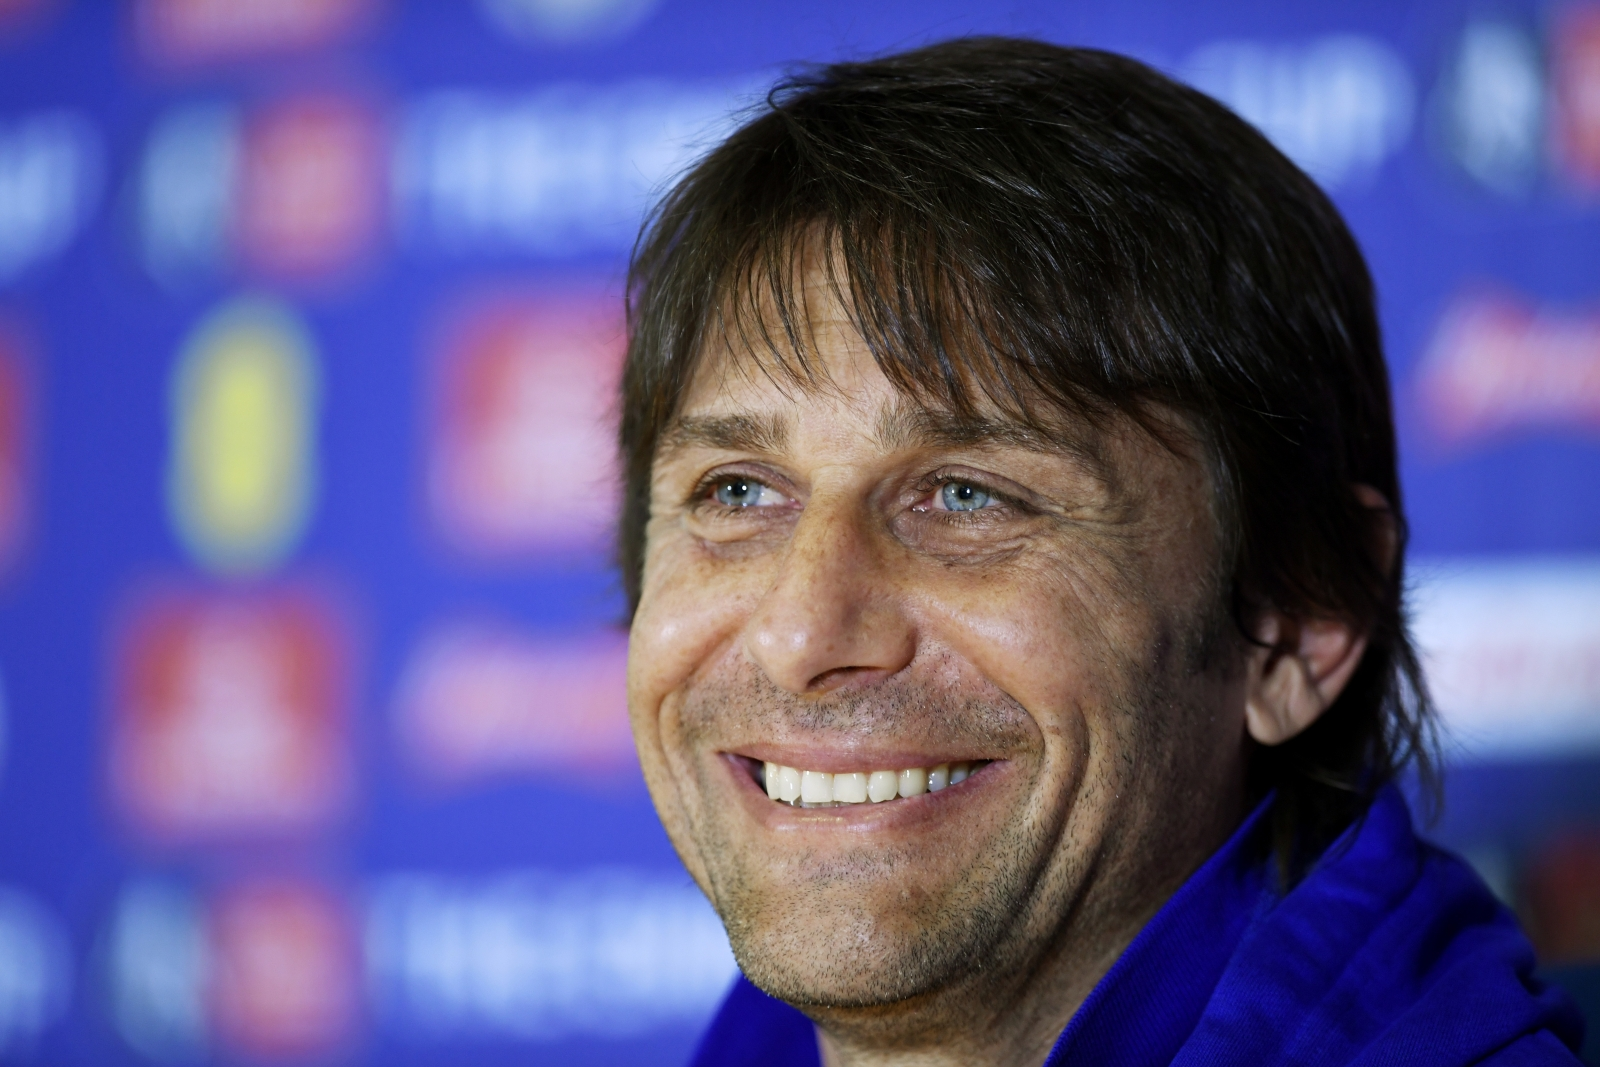 Wenger deserves to stay at Arsenal, says Conte